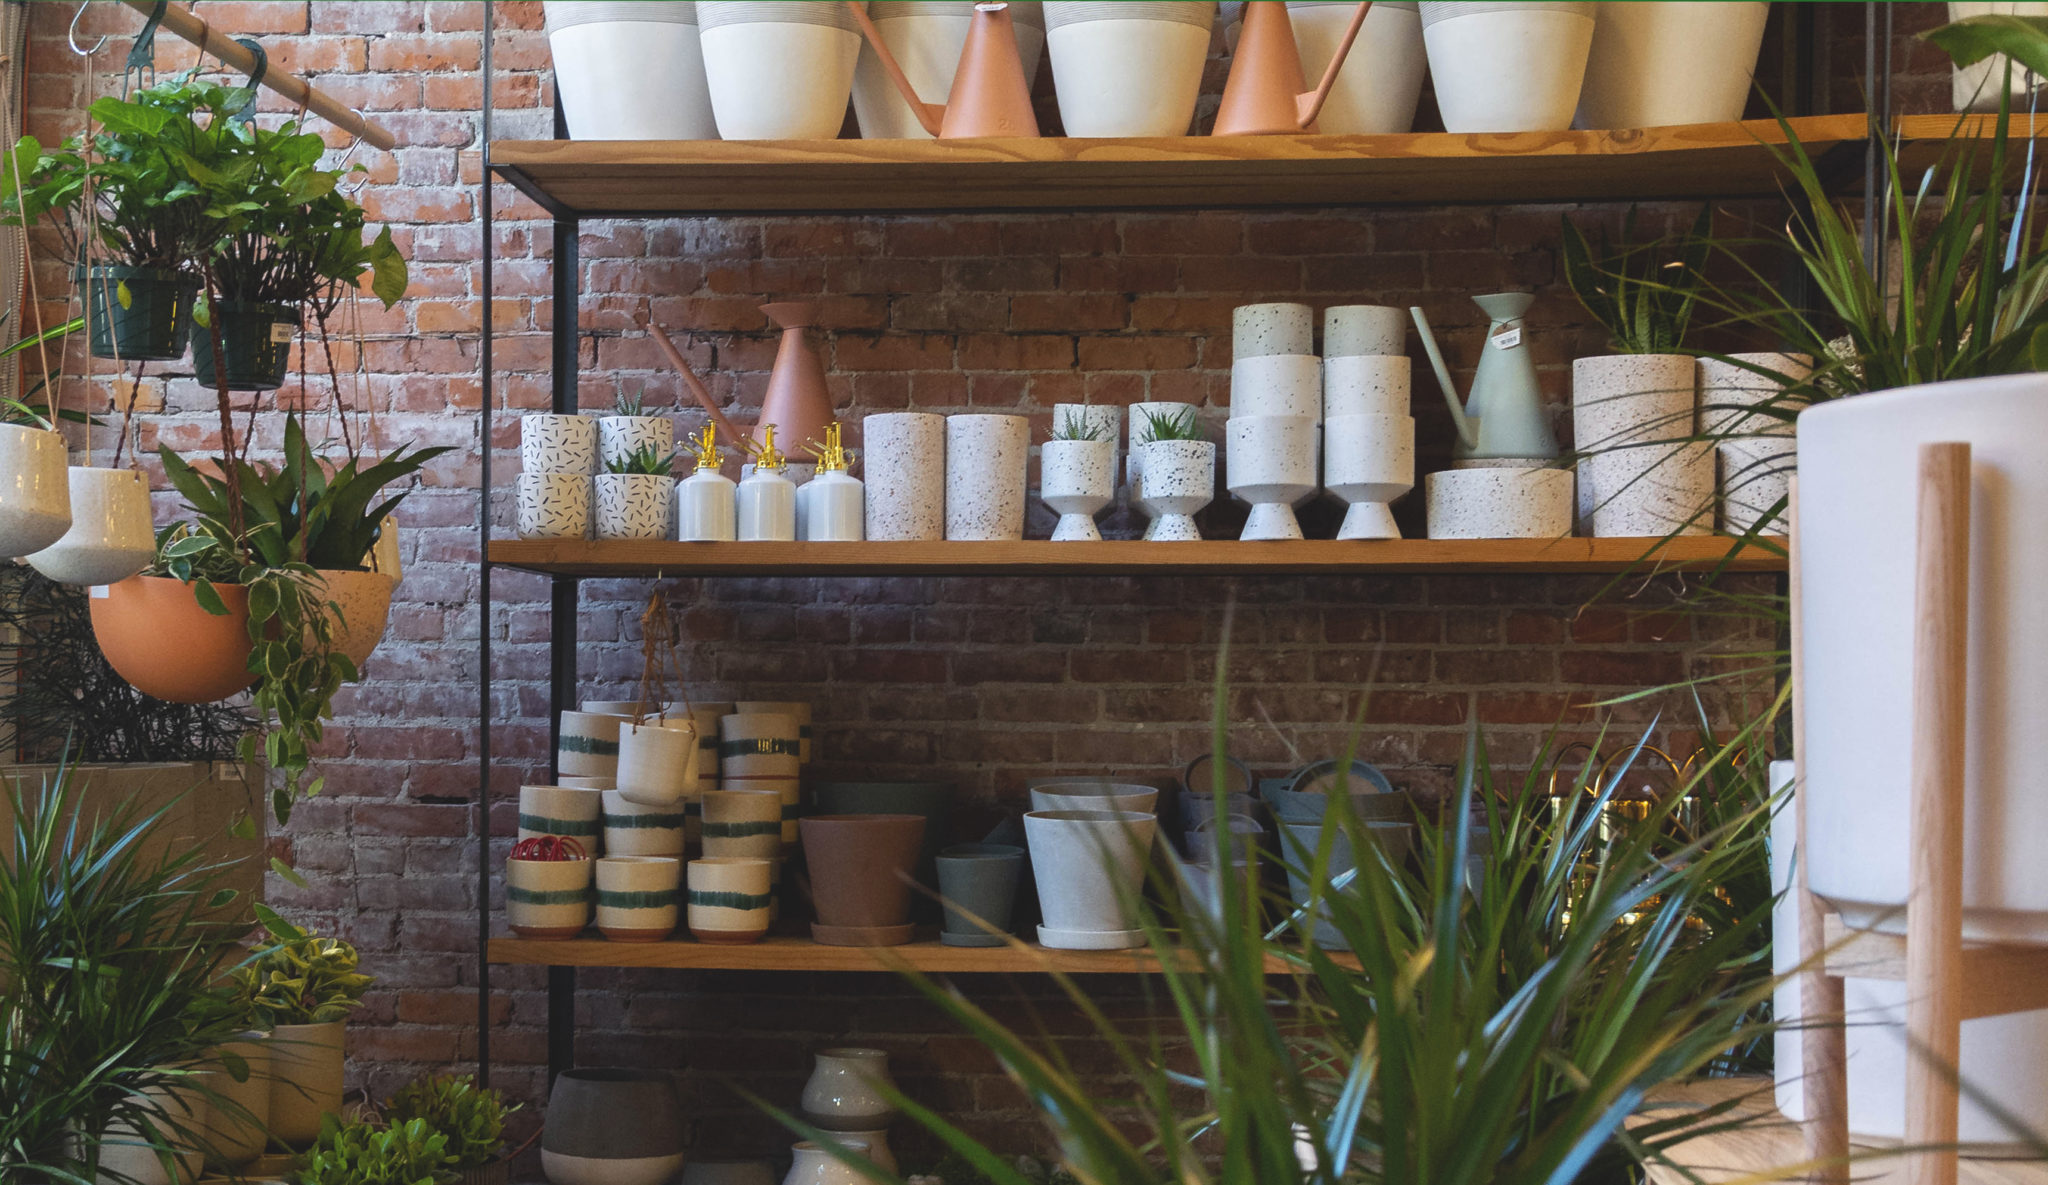 Shelves with plant pots and brick wall